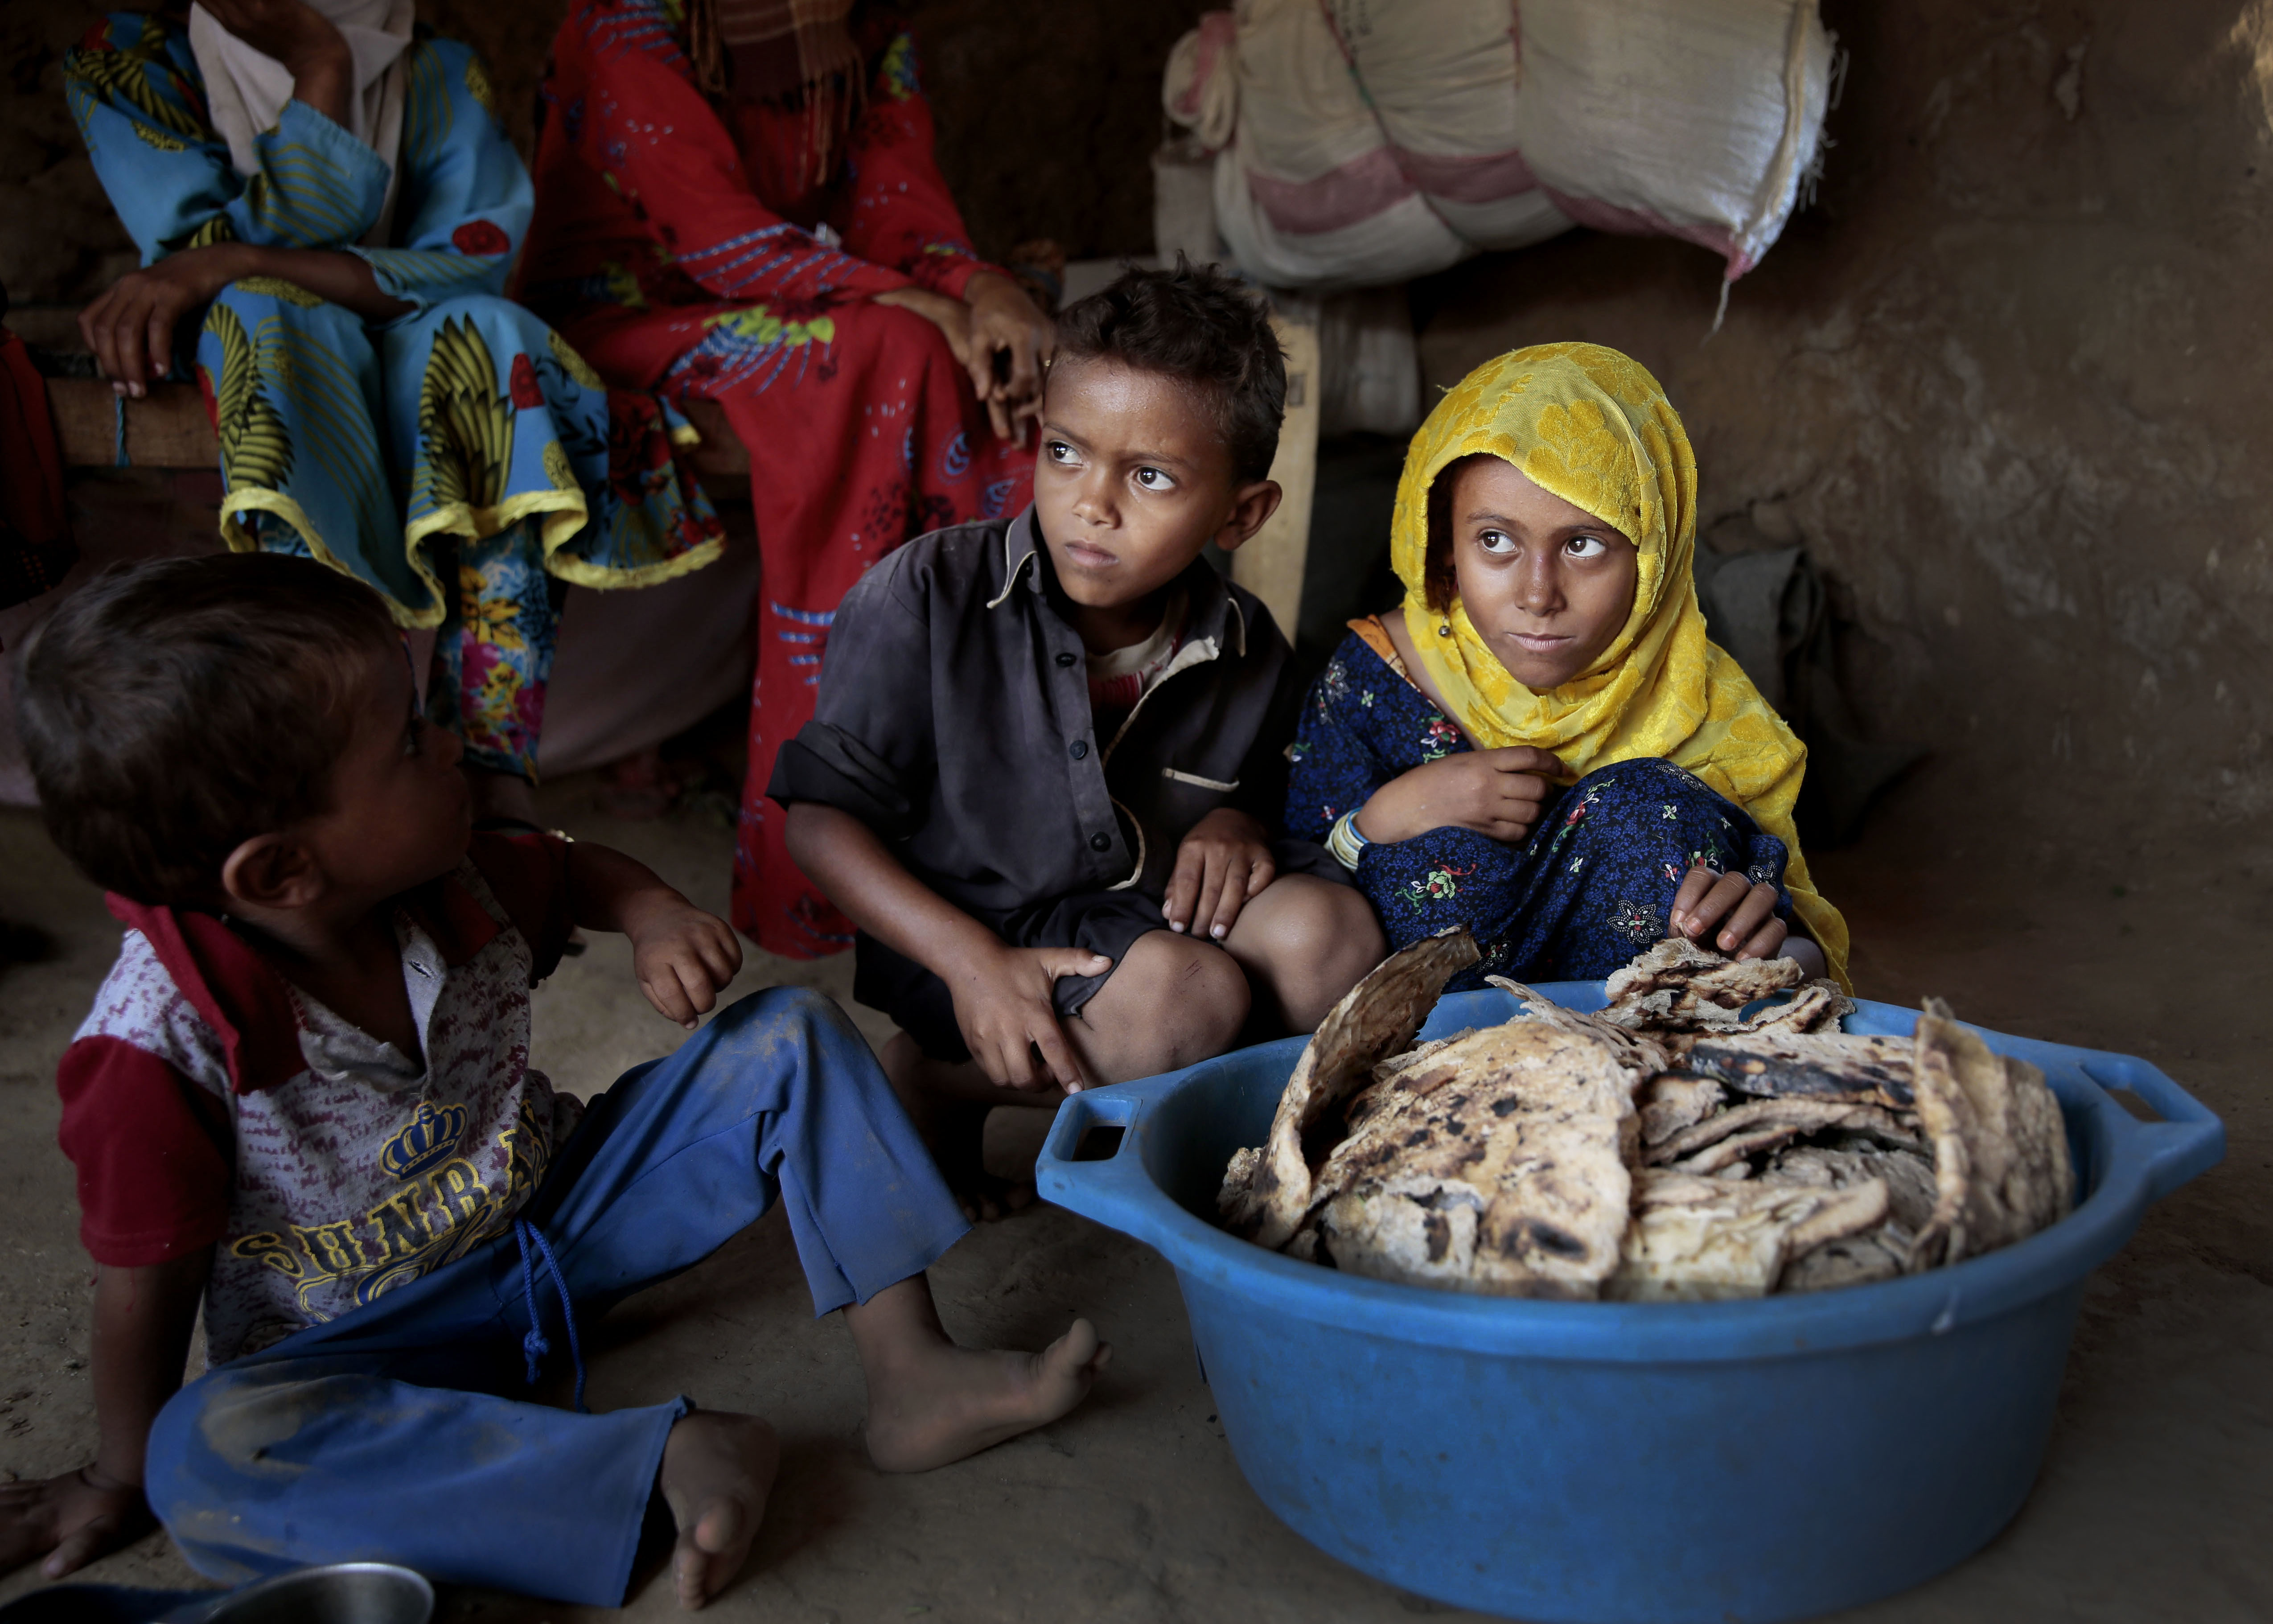 Children sit in front of moldy bread in their shelter, in Aslam, Hajjah, Yemen on Oct. 1, 2018.